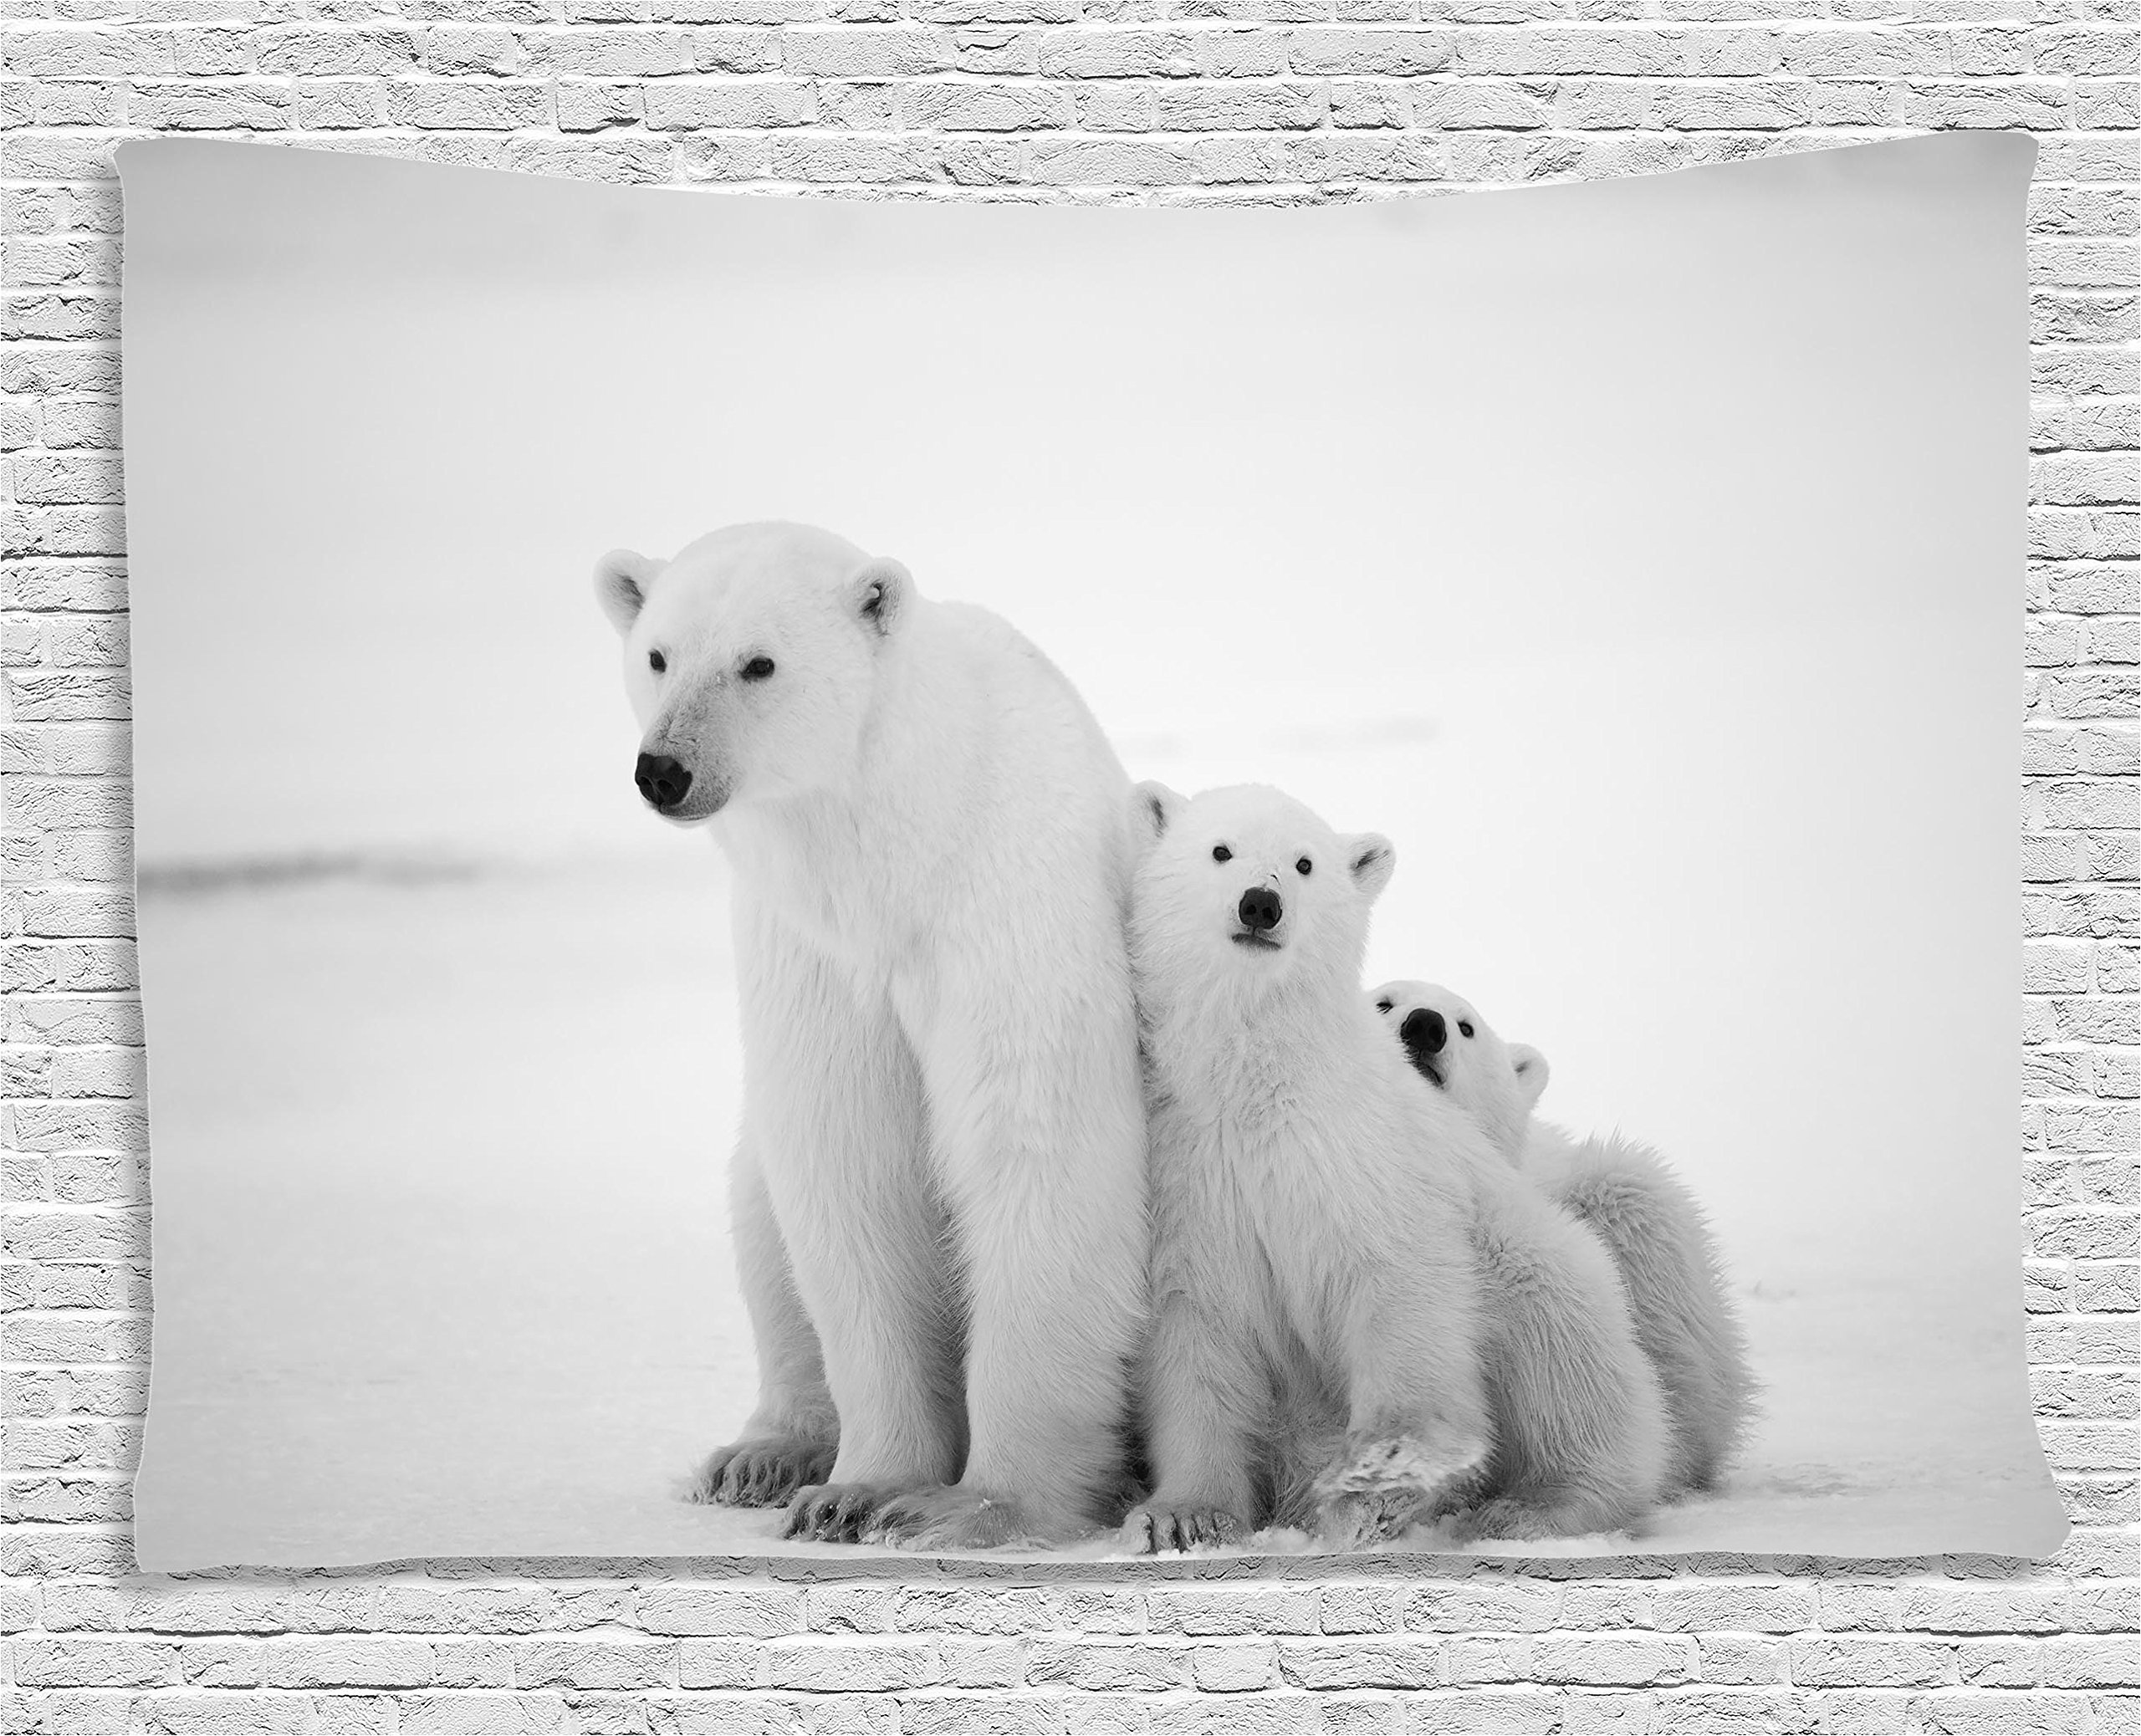 Ambesonne Sea Animals Decor Collection, Polar Bear Family With Two Small Bear Cubs Around Snow Cold Winter North, Bedroom Living Room Dorm Wall Hanging Tapestry, 80W X 60L Inch